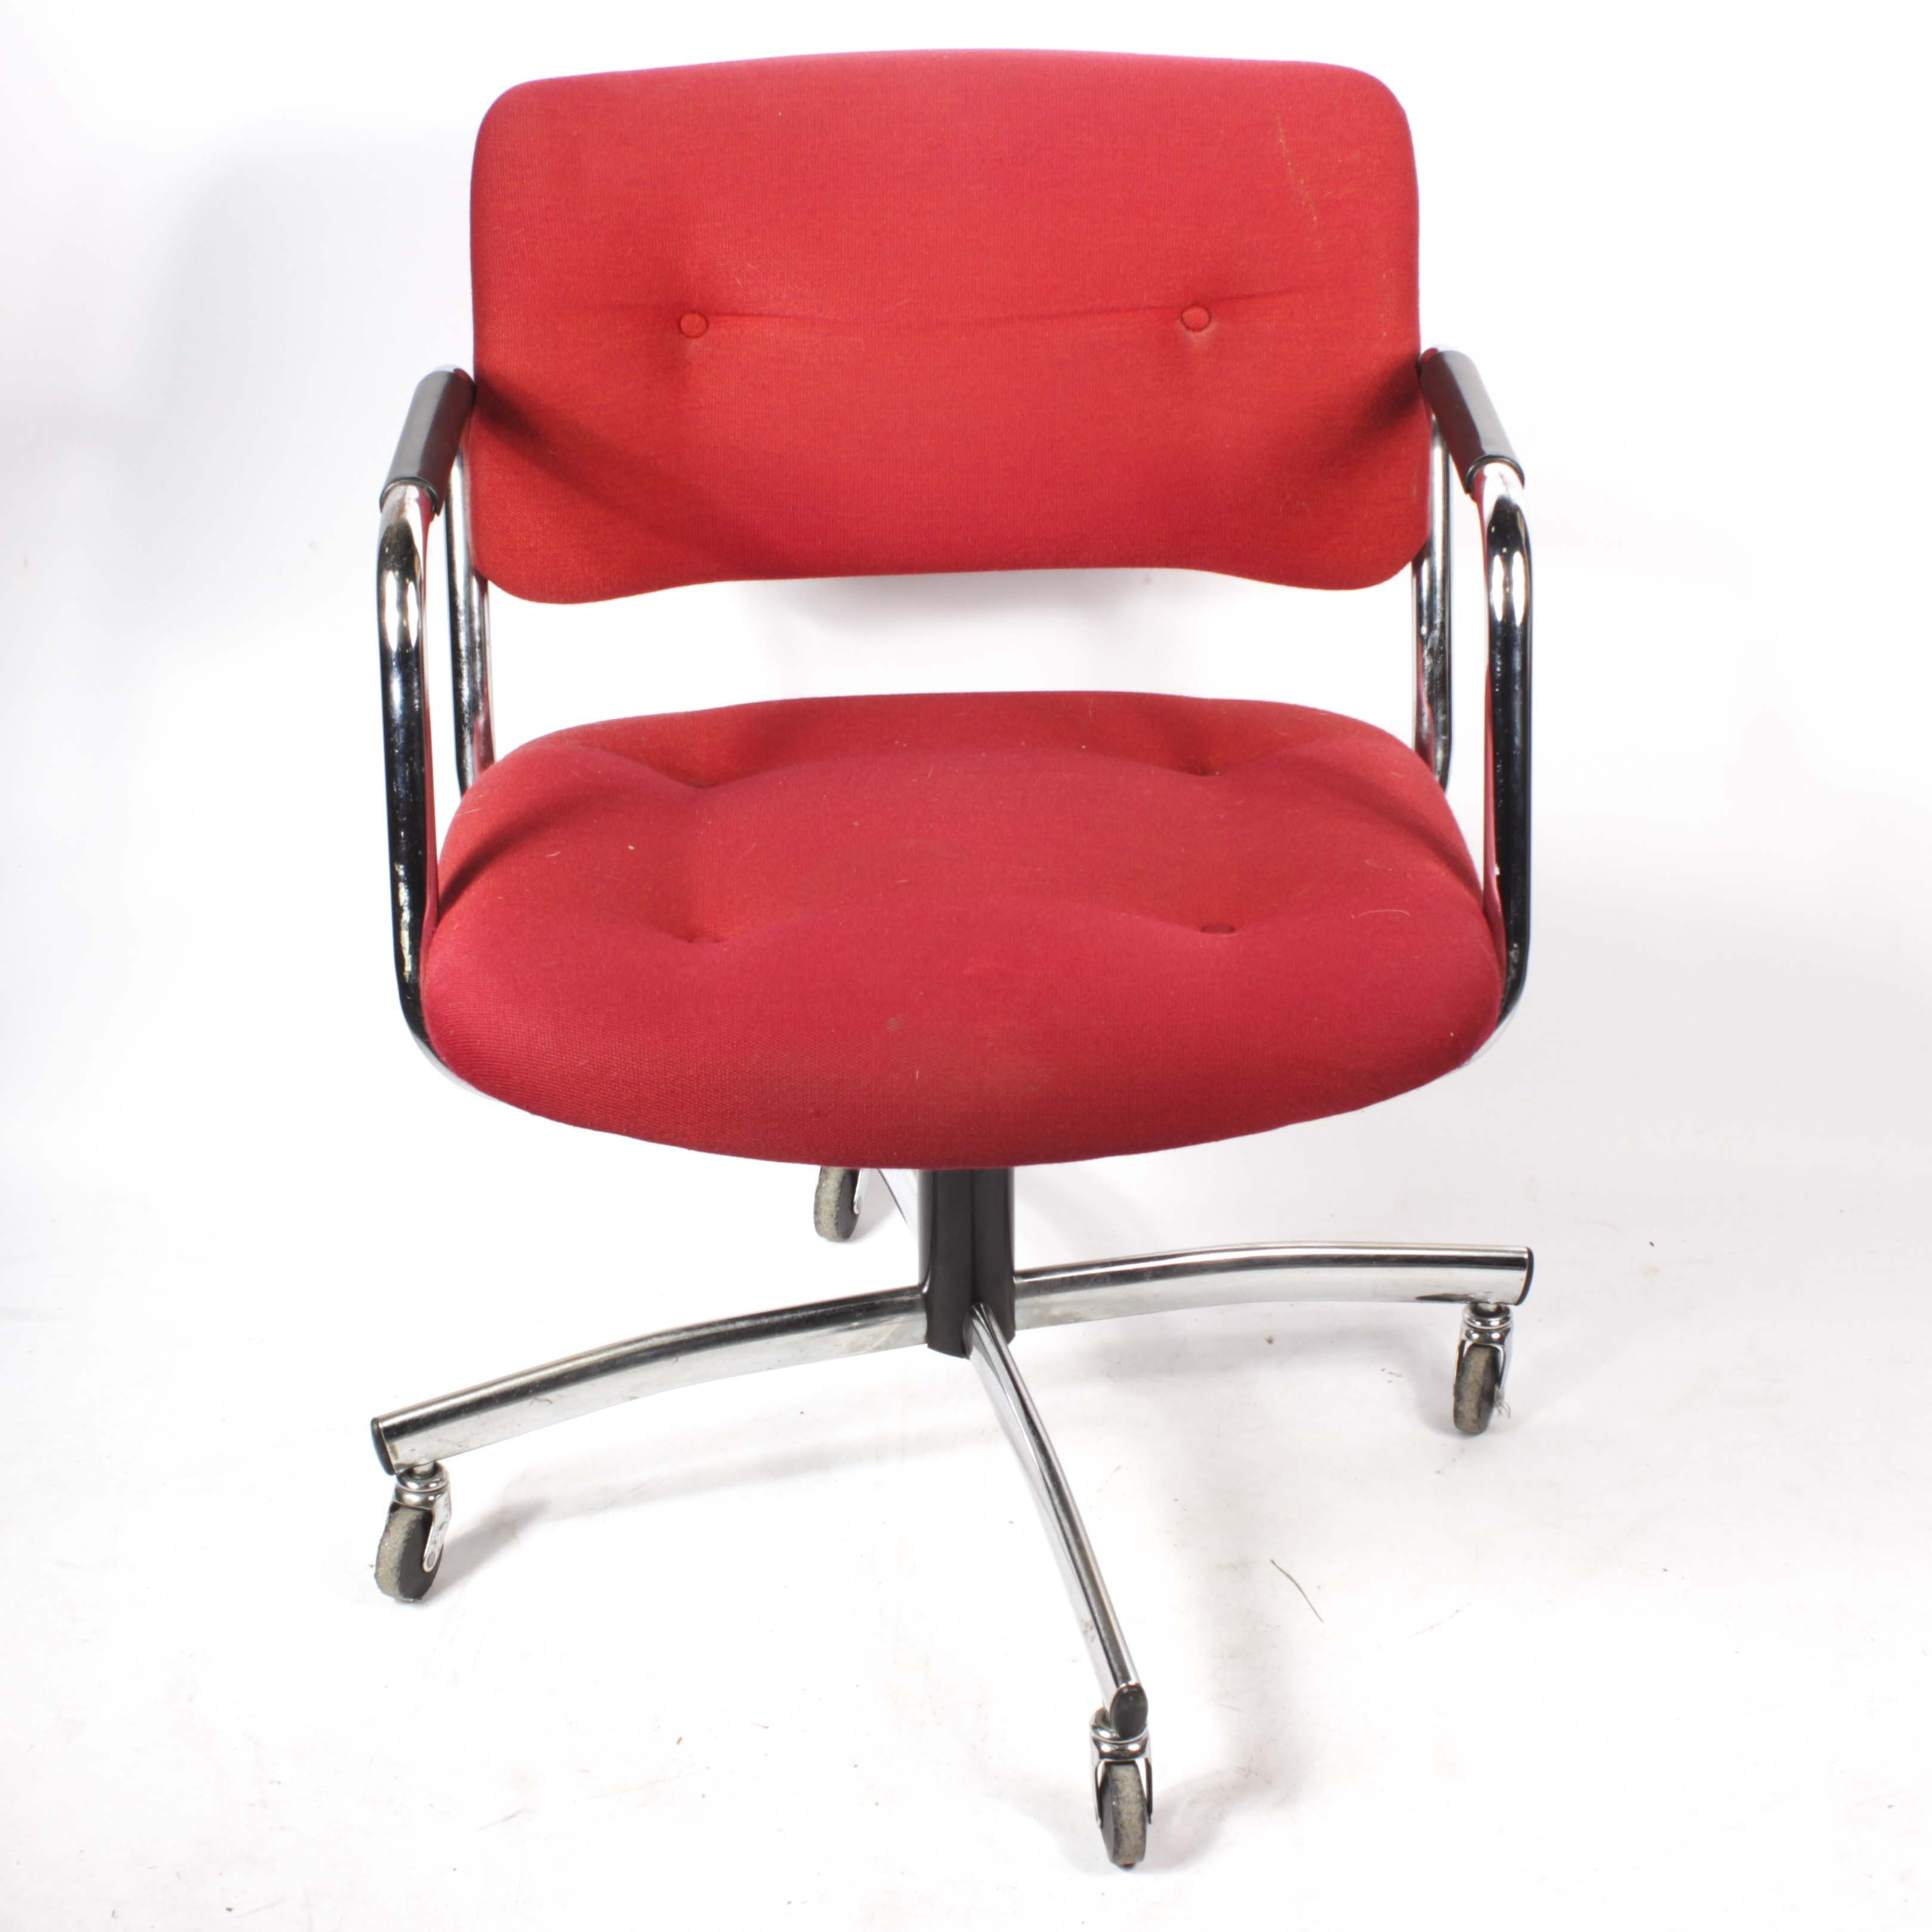 Chrome Frame Office Chair by Steelchase, Mid-20th Century